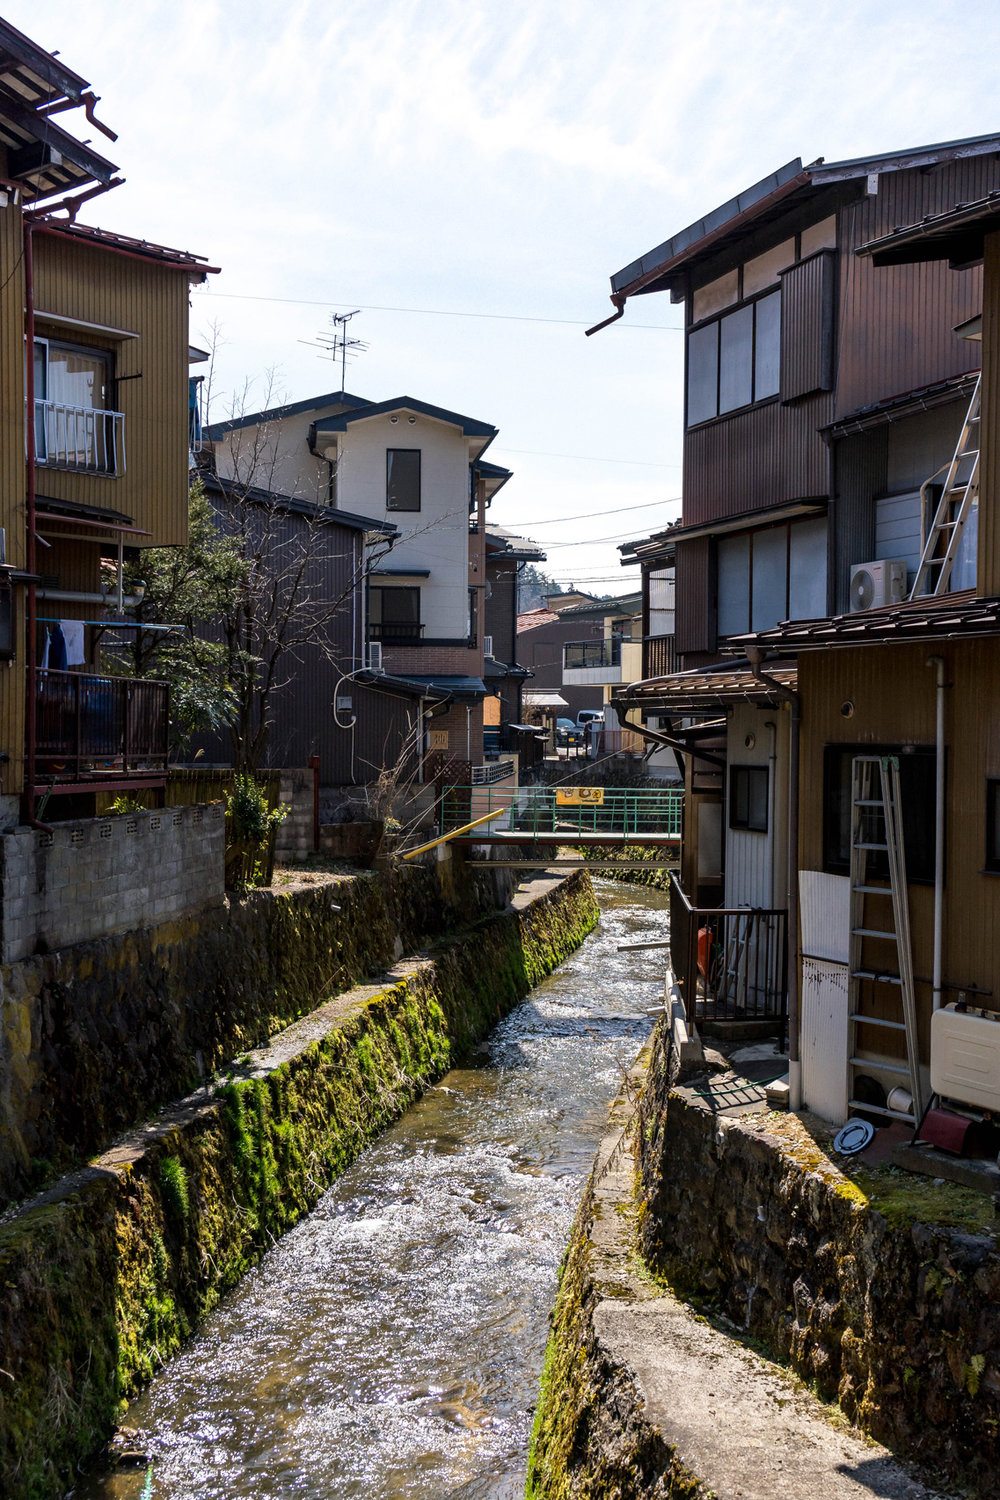 Canals in Takayama